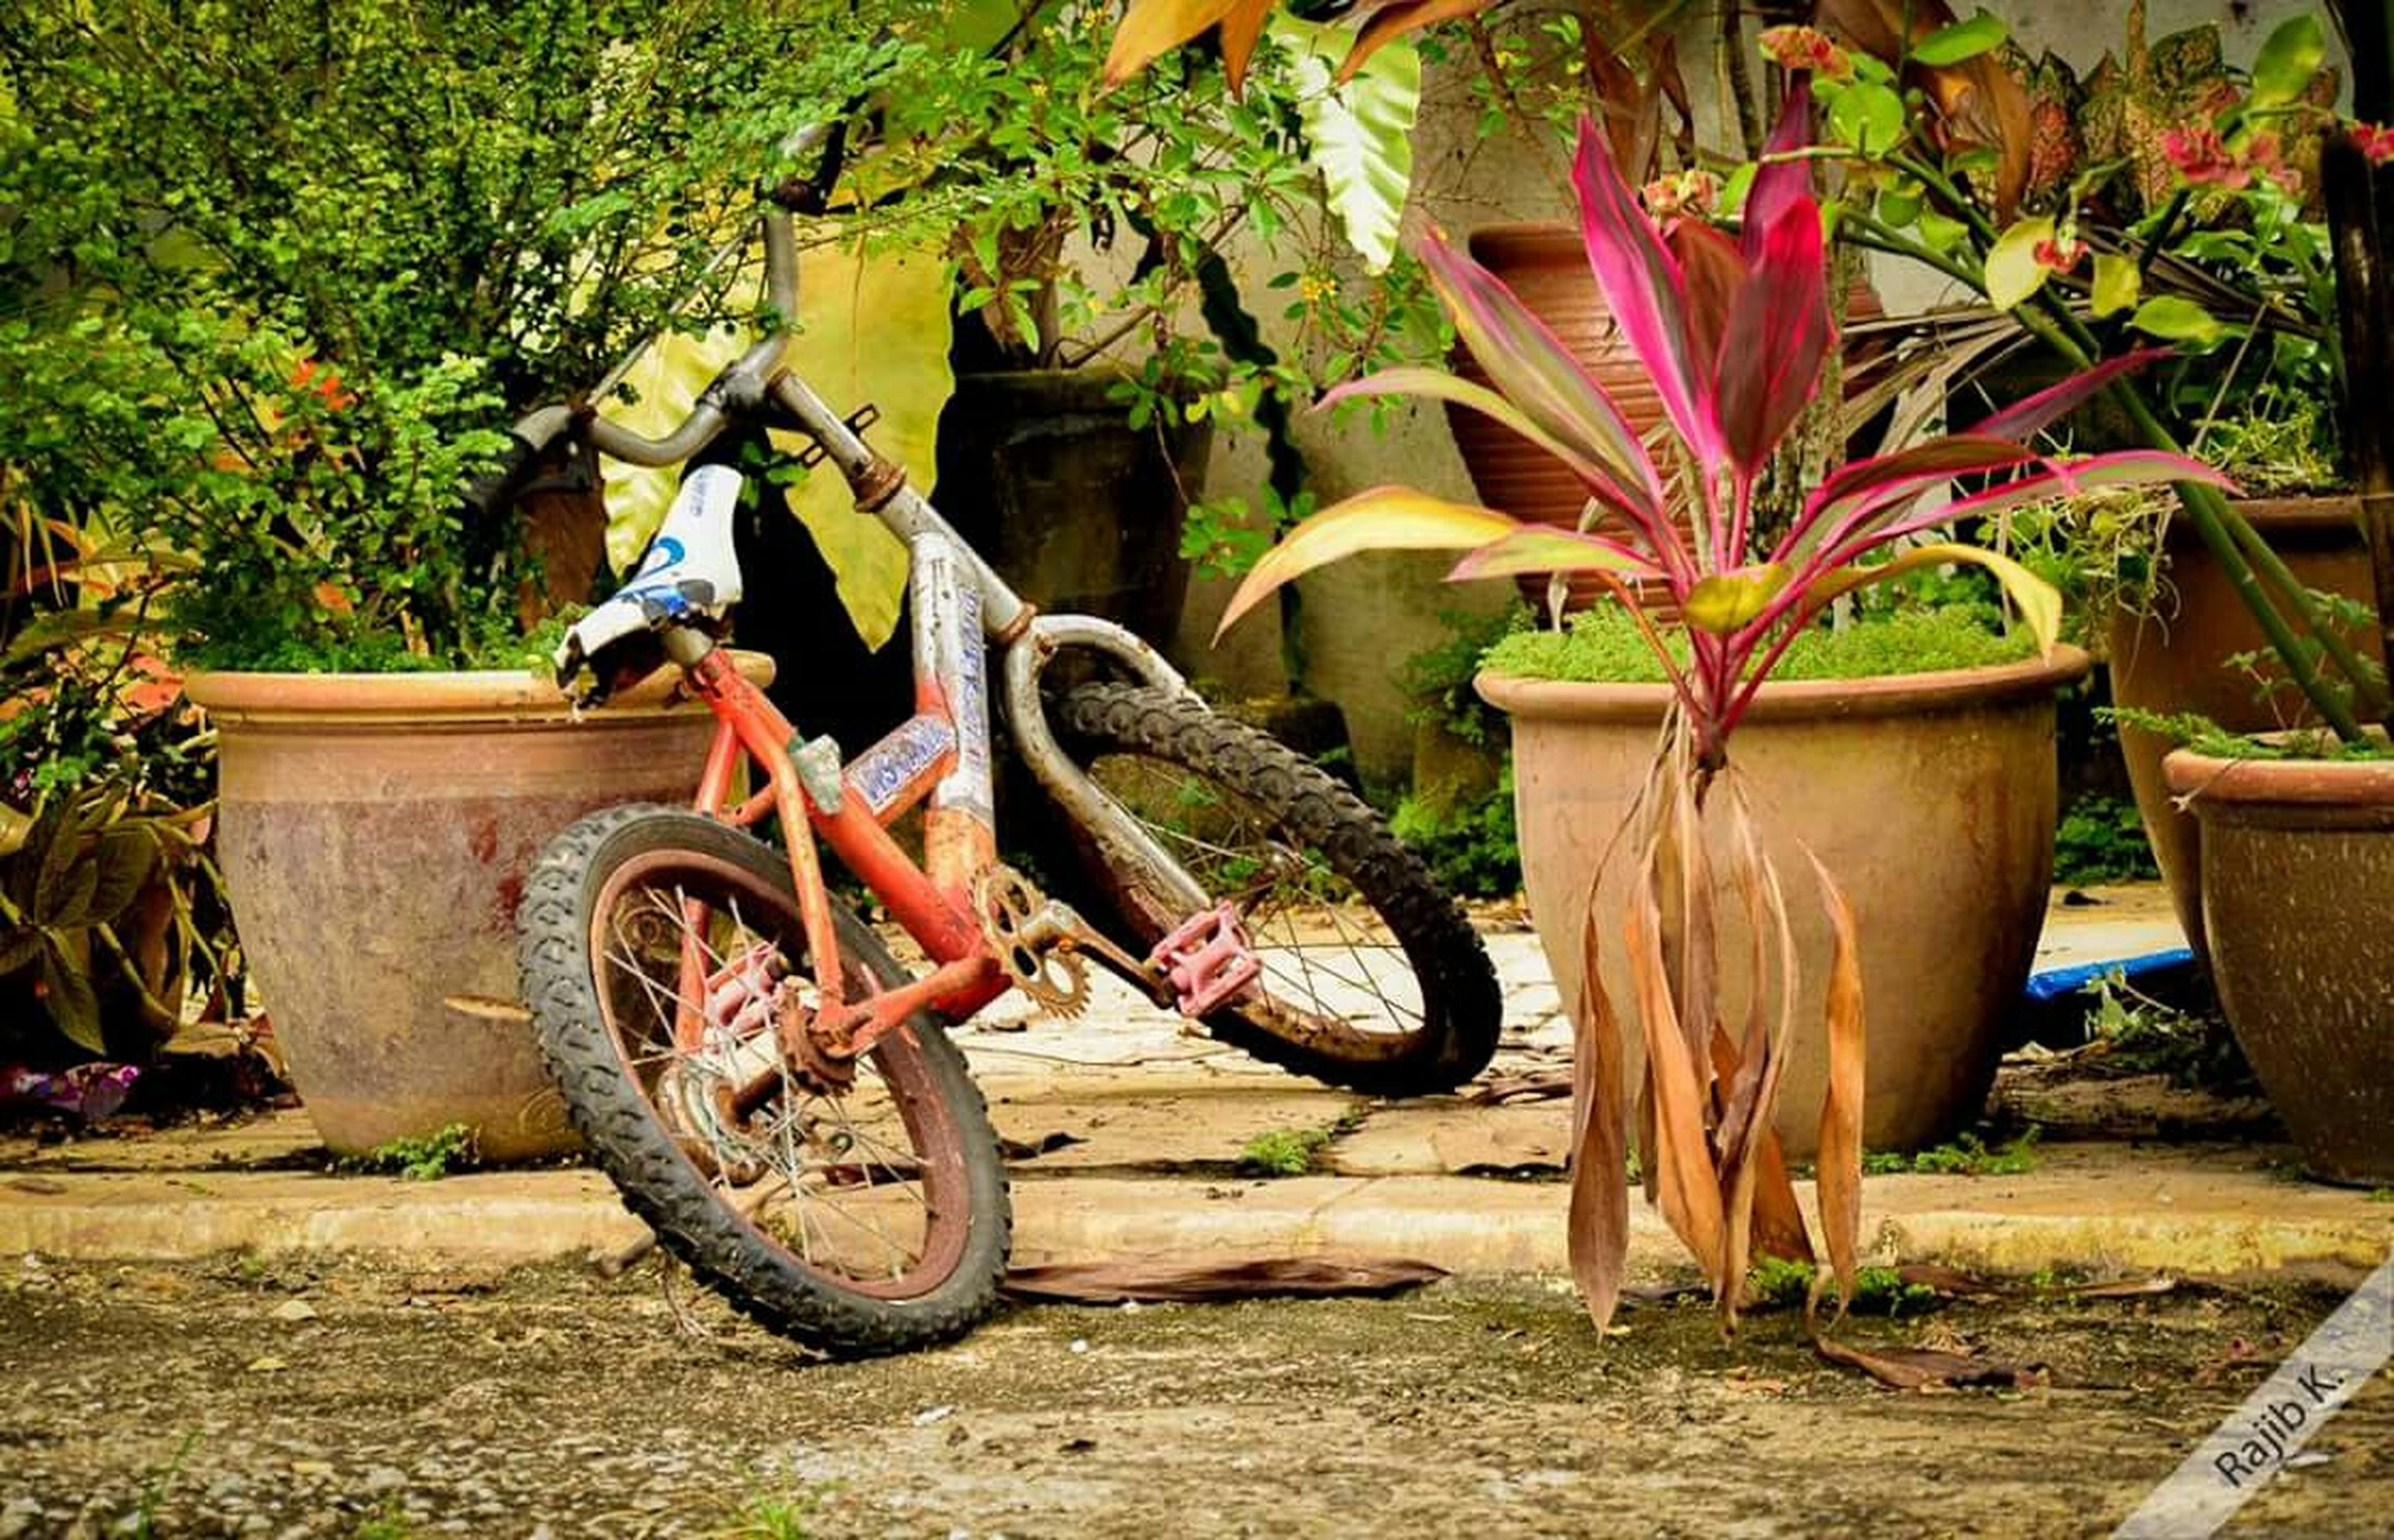 bicycle, growth, plant, transportation, wheel, land vehicle, mode of transport, potted plant, day, outdoors, sunlight, stationary, no people, front or back yard, nature, tree, abandoned, parking, parked, field